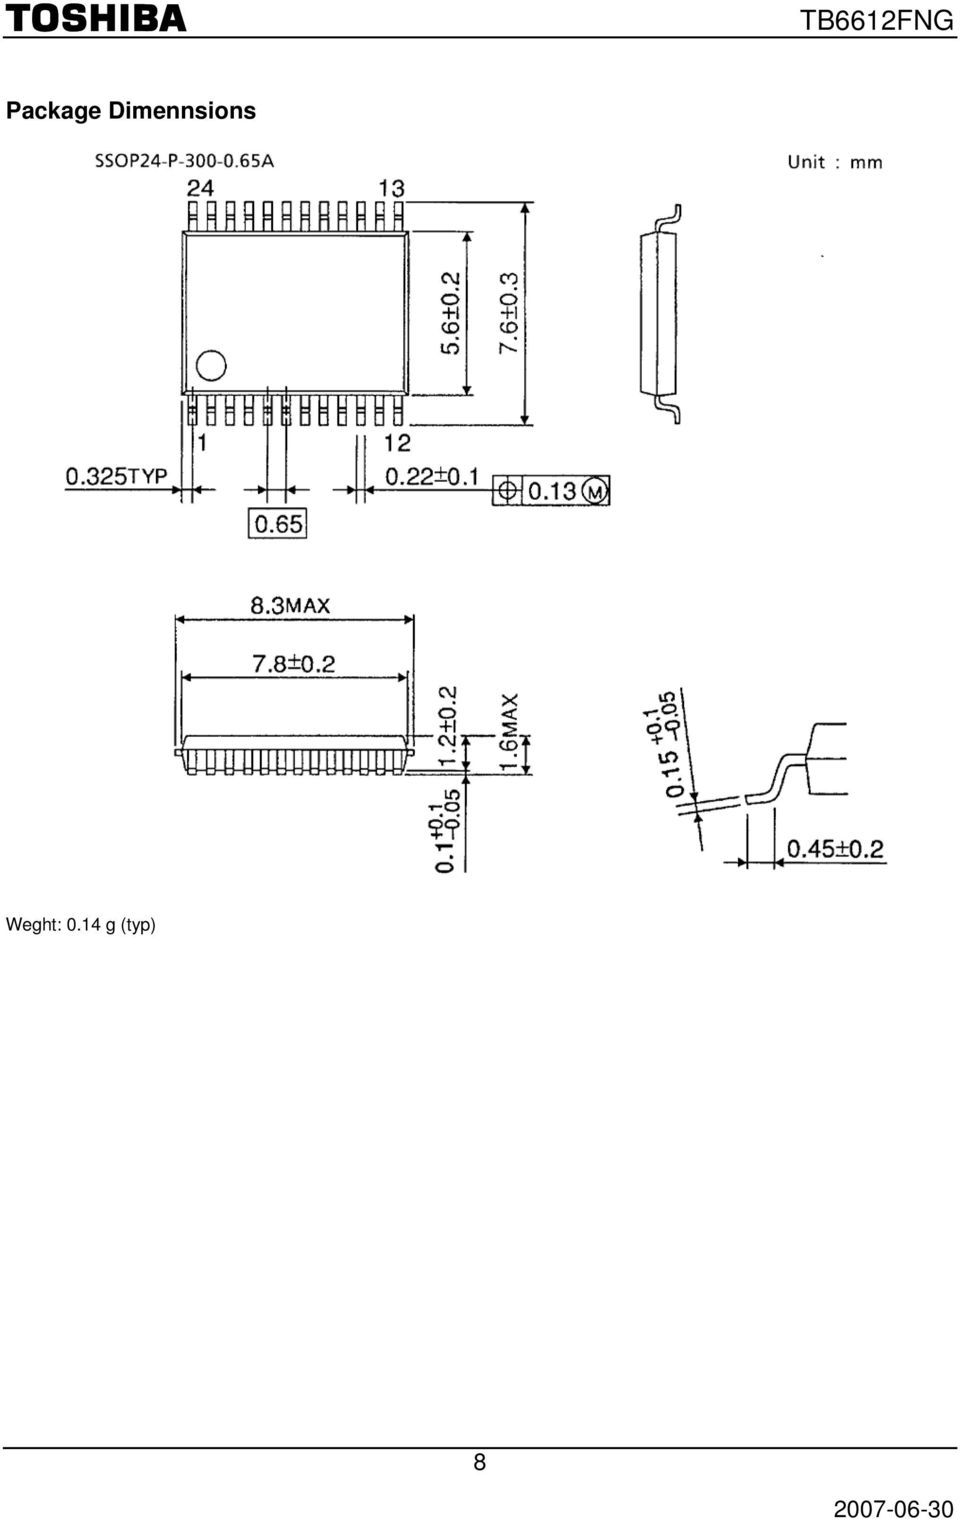 T B F N G Tb6612fng Driver Ic For Dual Dc Motor Features Toshiba Regulated Power Supply Circuit Diagram Composed Of Ca723c Block Diagrams Some The Functional Blocks Circuits Or Constants In May Be Omitted Simplified Explanatory Purposes 2